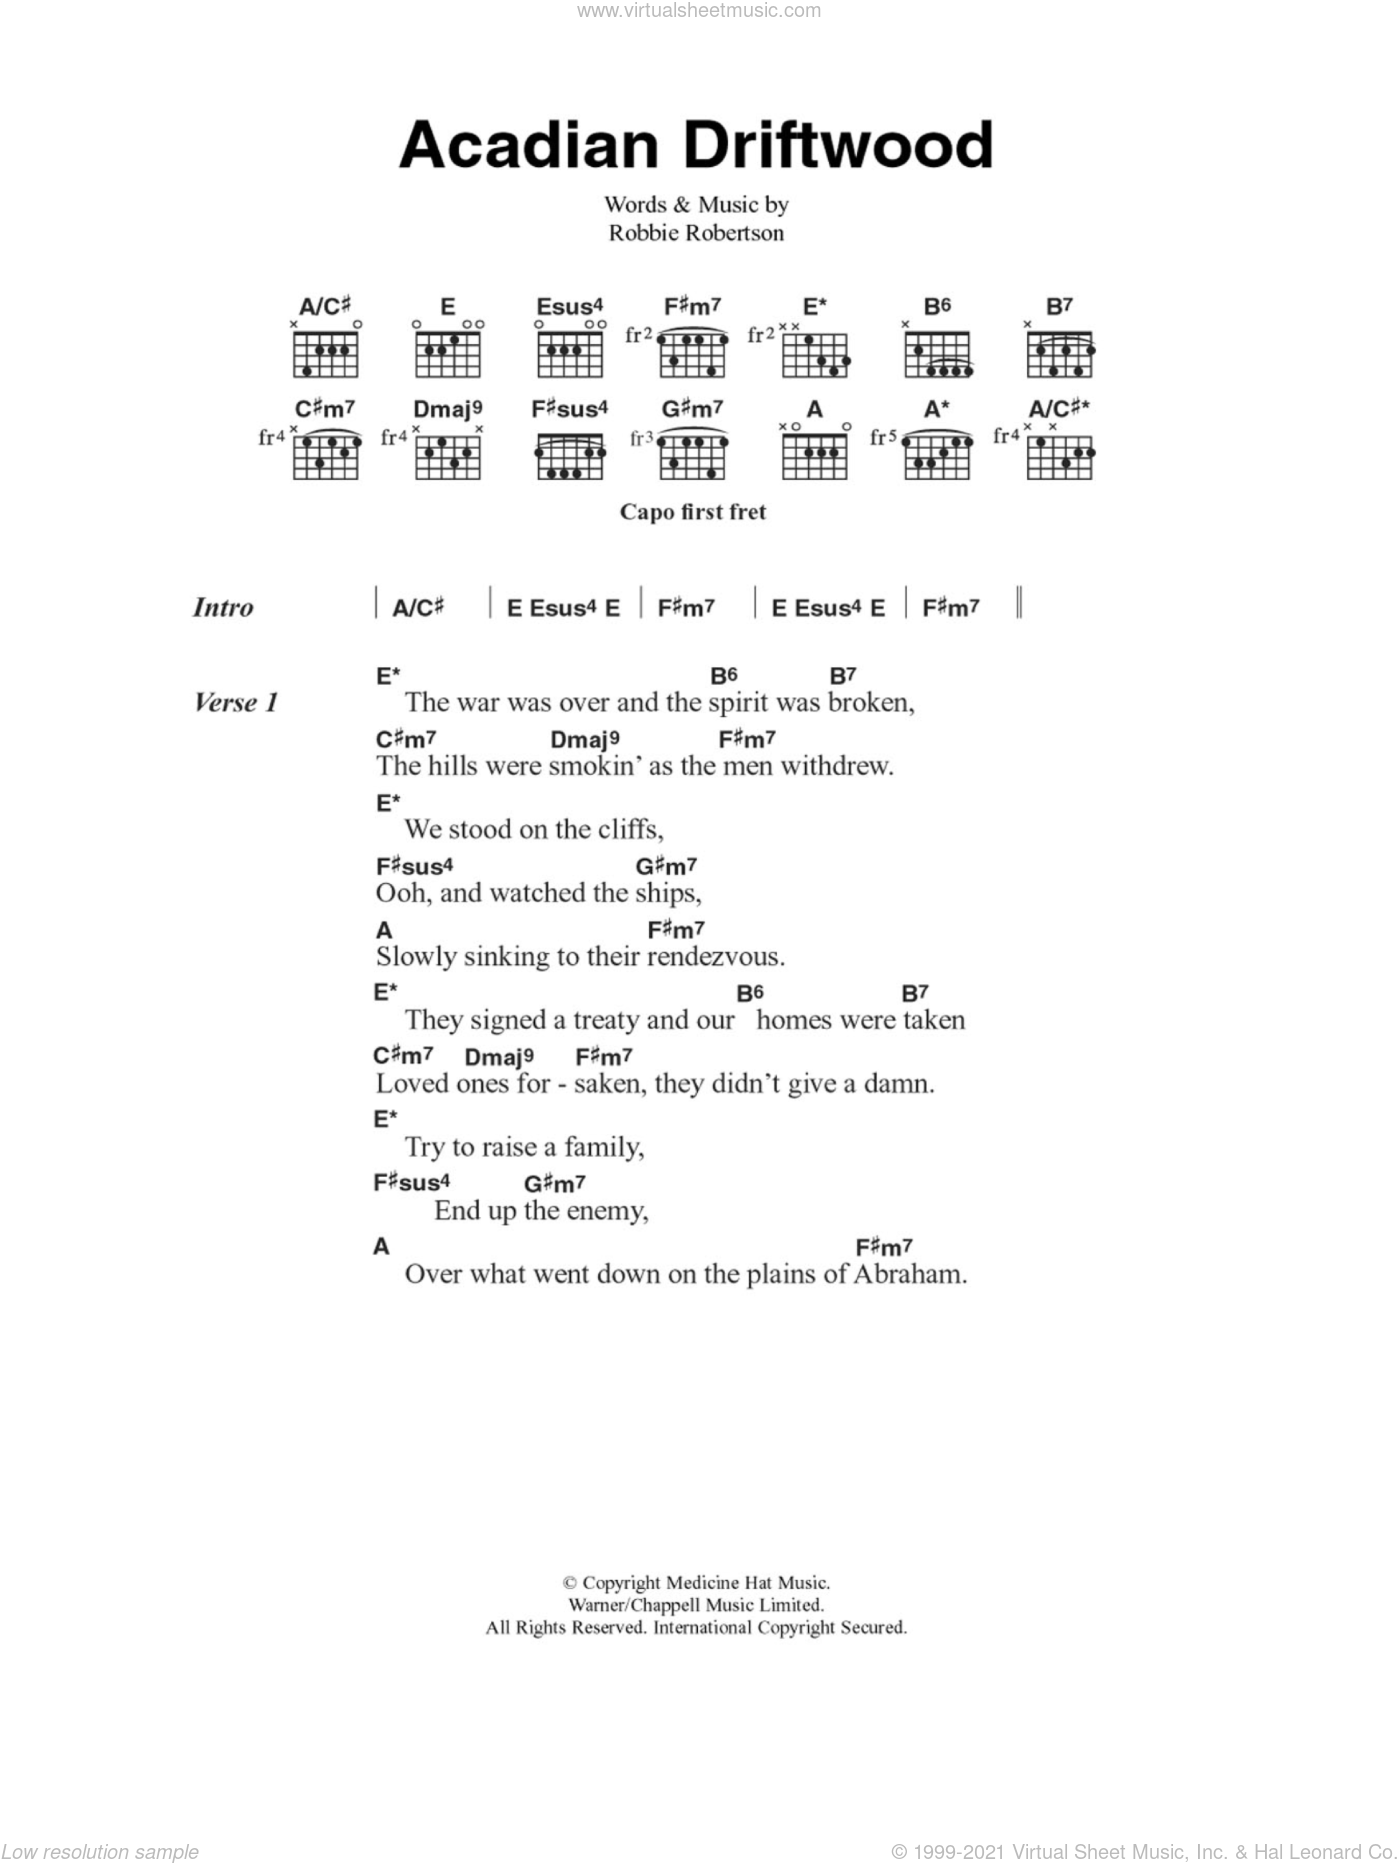 Acadian Driftwood sheet music for guitar (chords) by Robbie Robertson